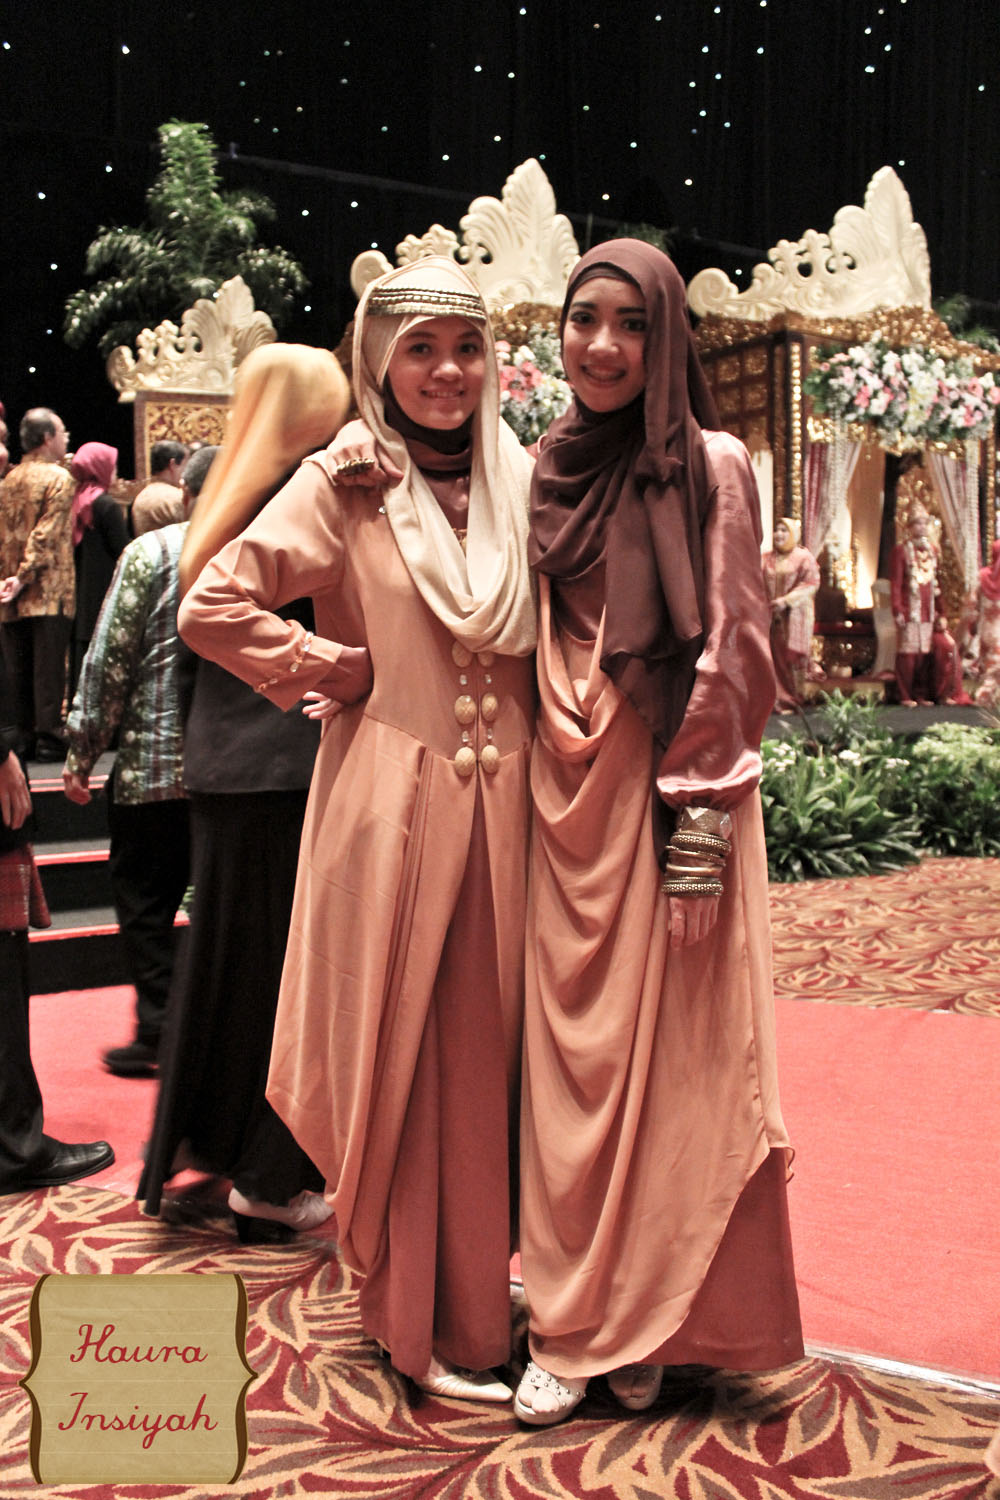 nadya-1-of-1-copy Style Inspiration: My Brown Abaya